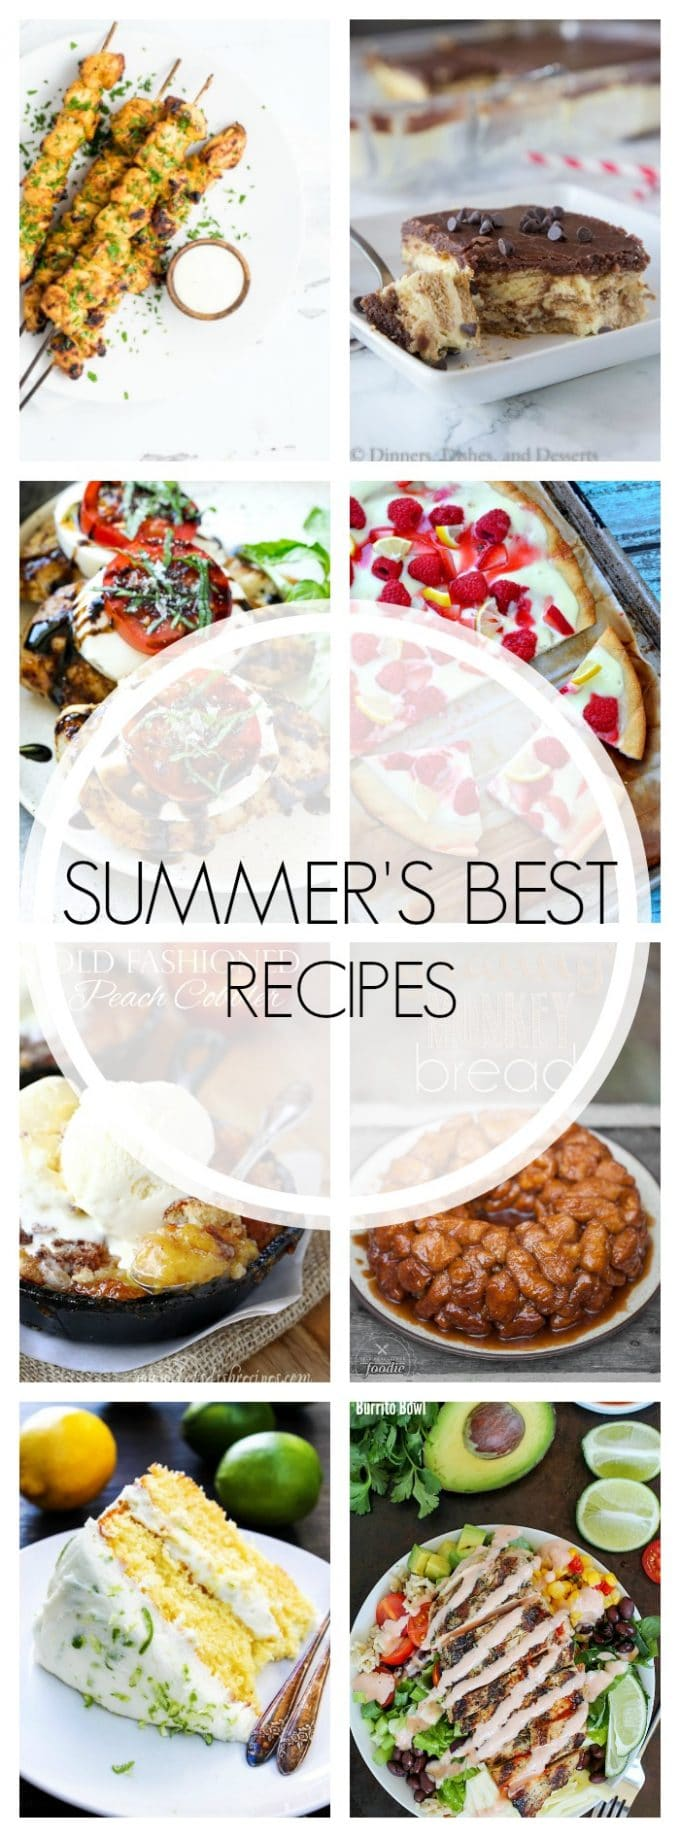 The Best Recipes of the Summer